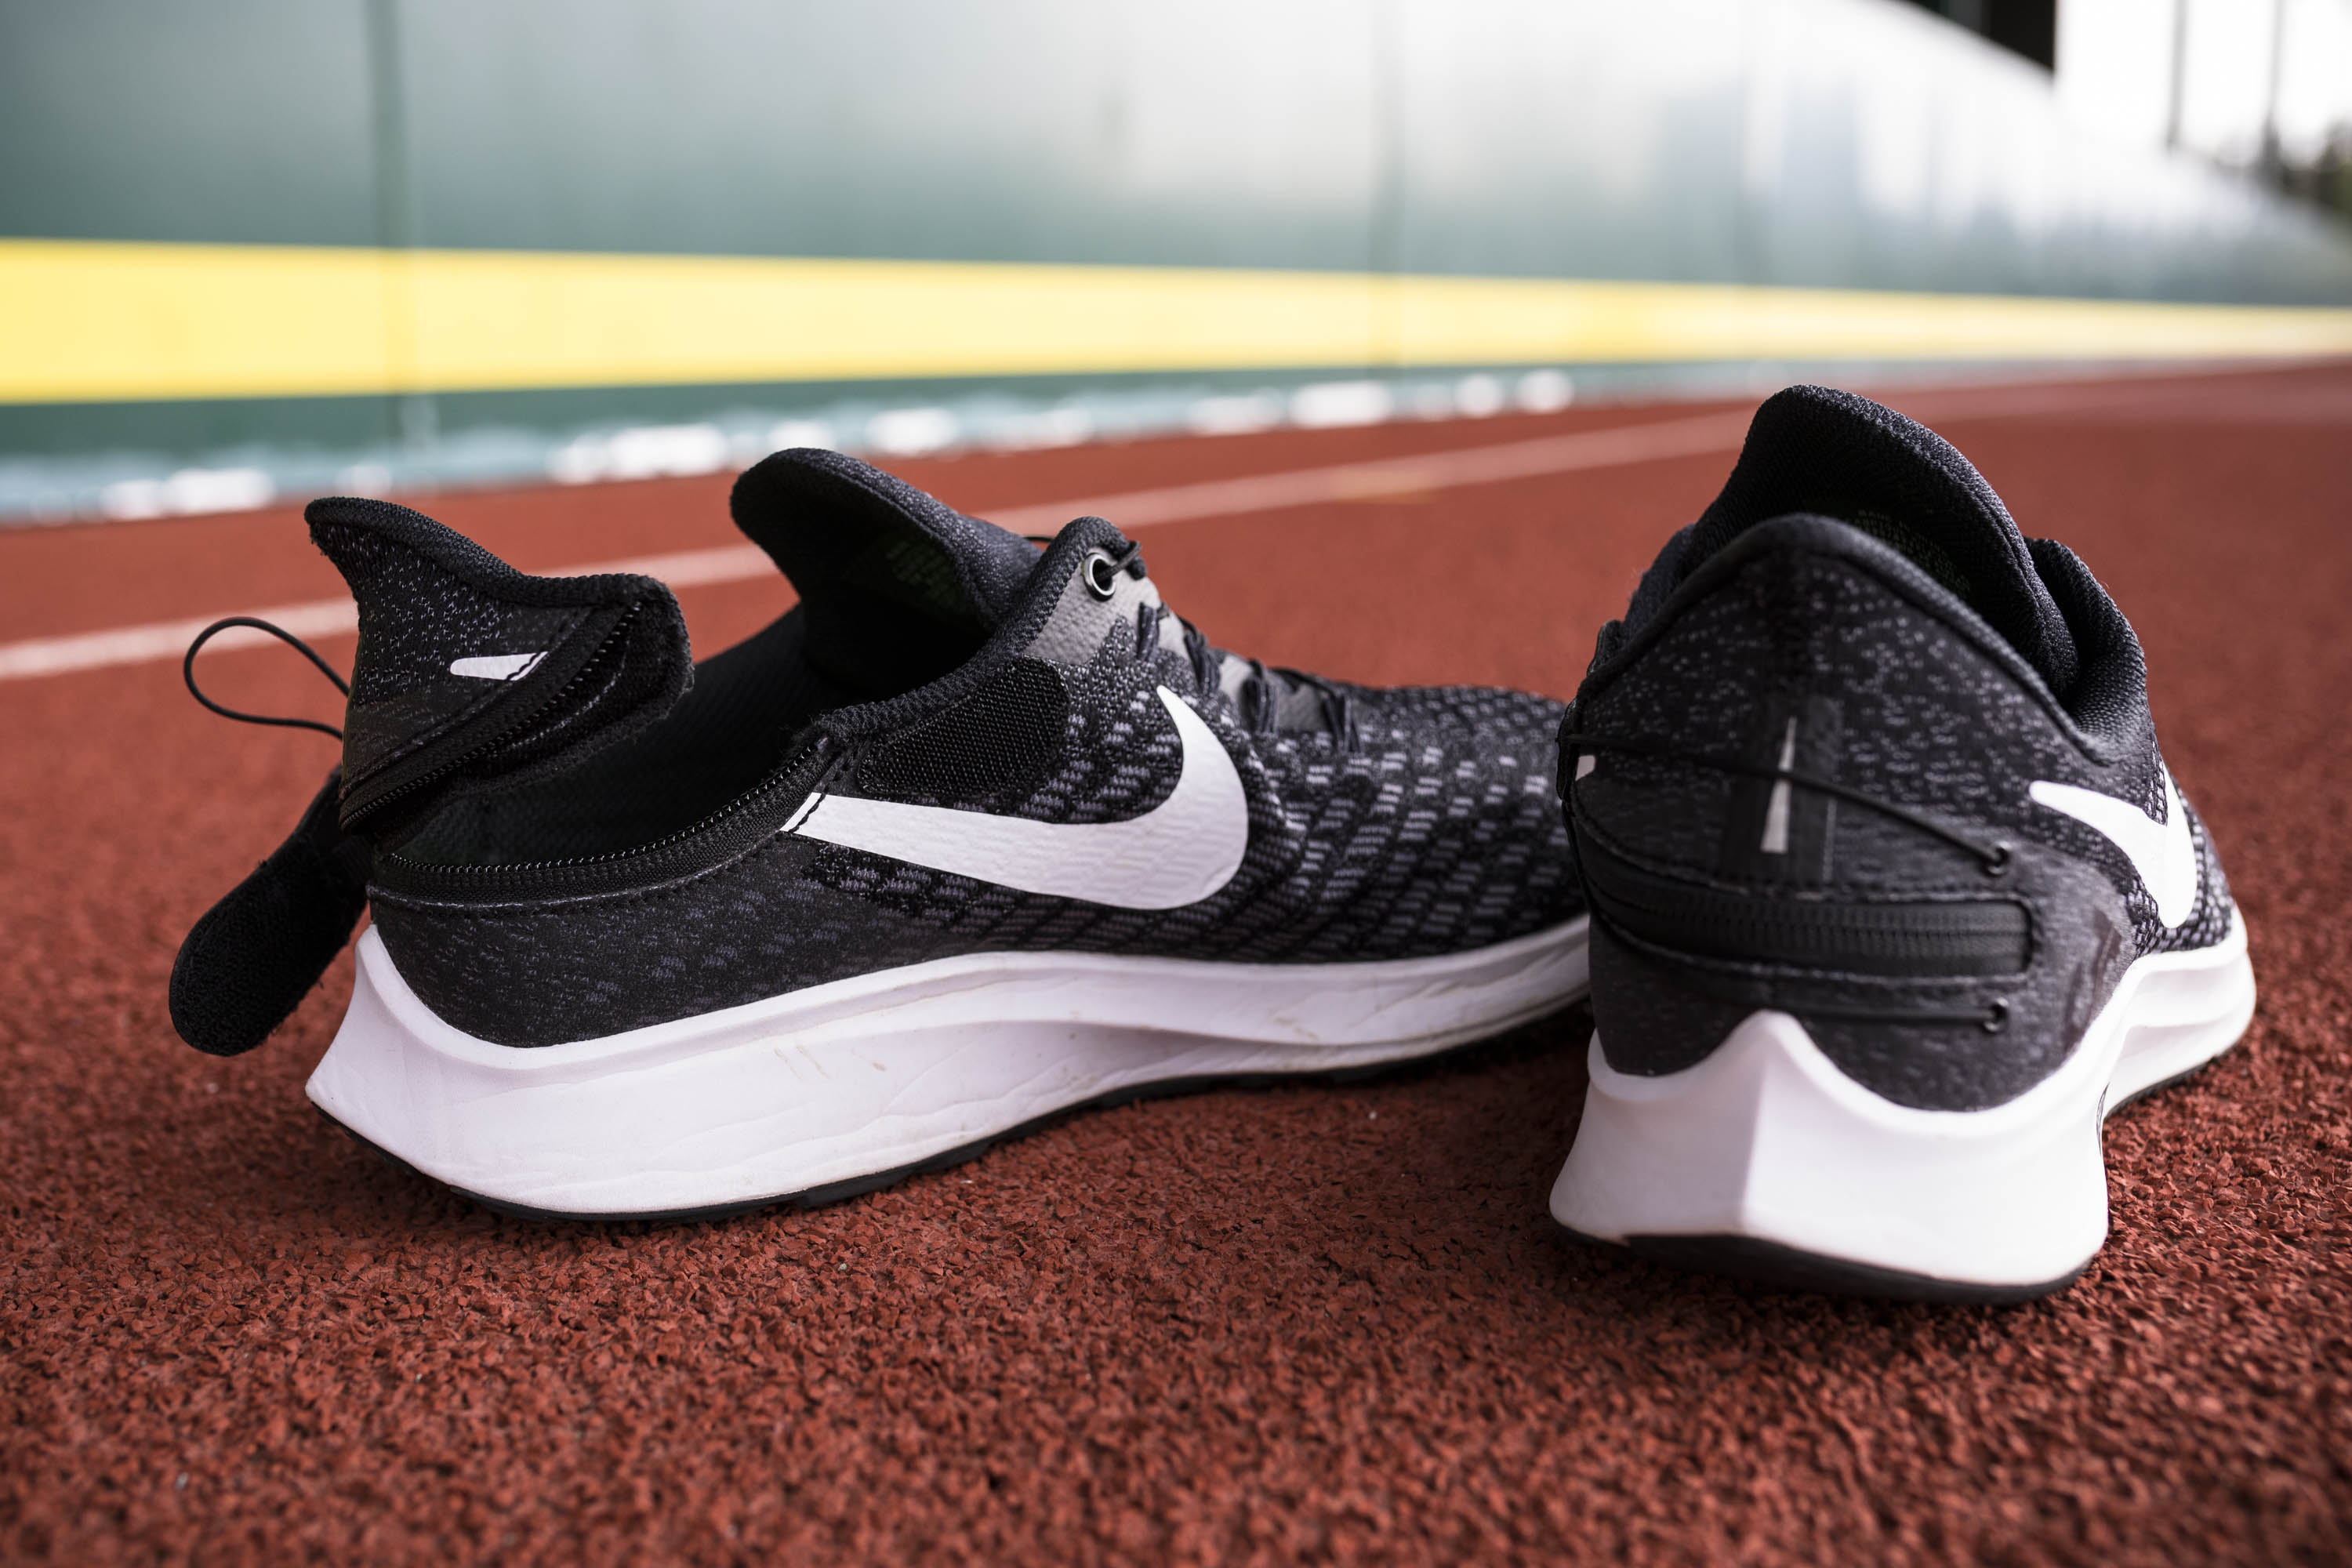 new concept 5c76a 1ff0c Nike FlyEase shoe technology to aid runners with ...